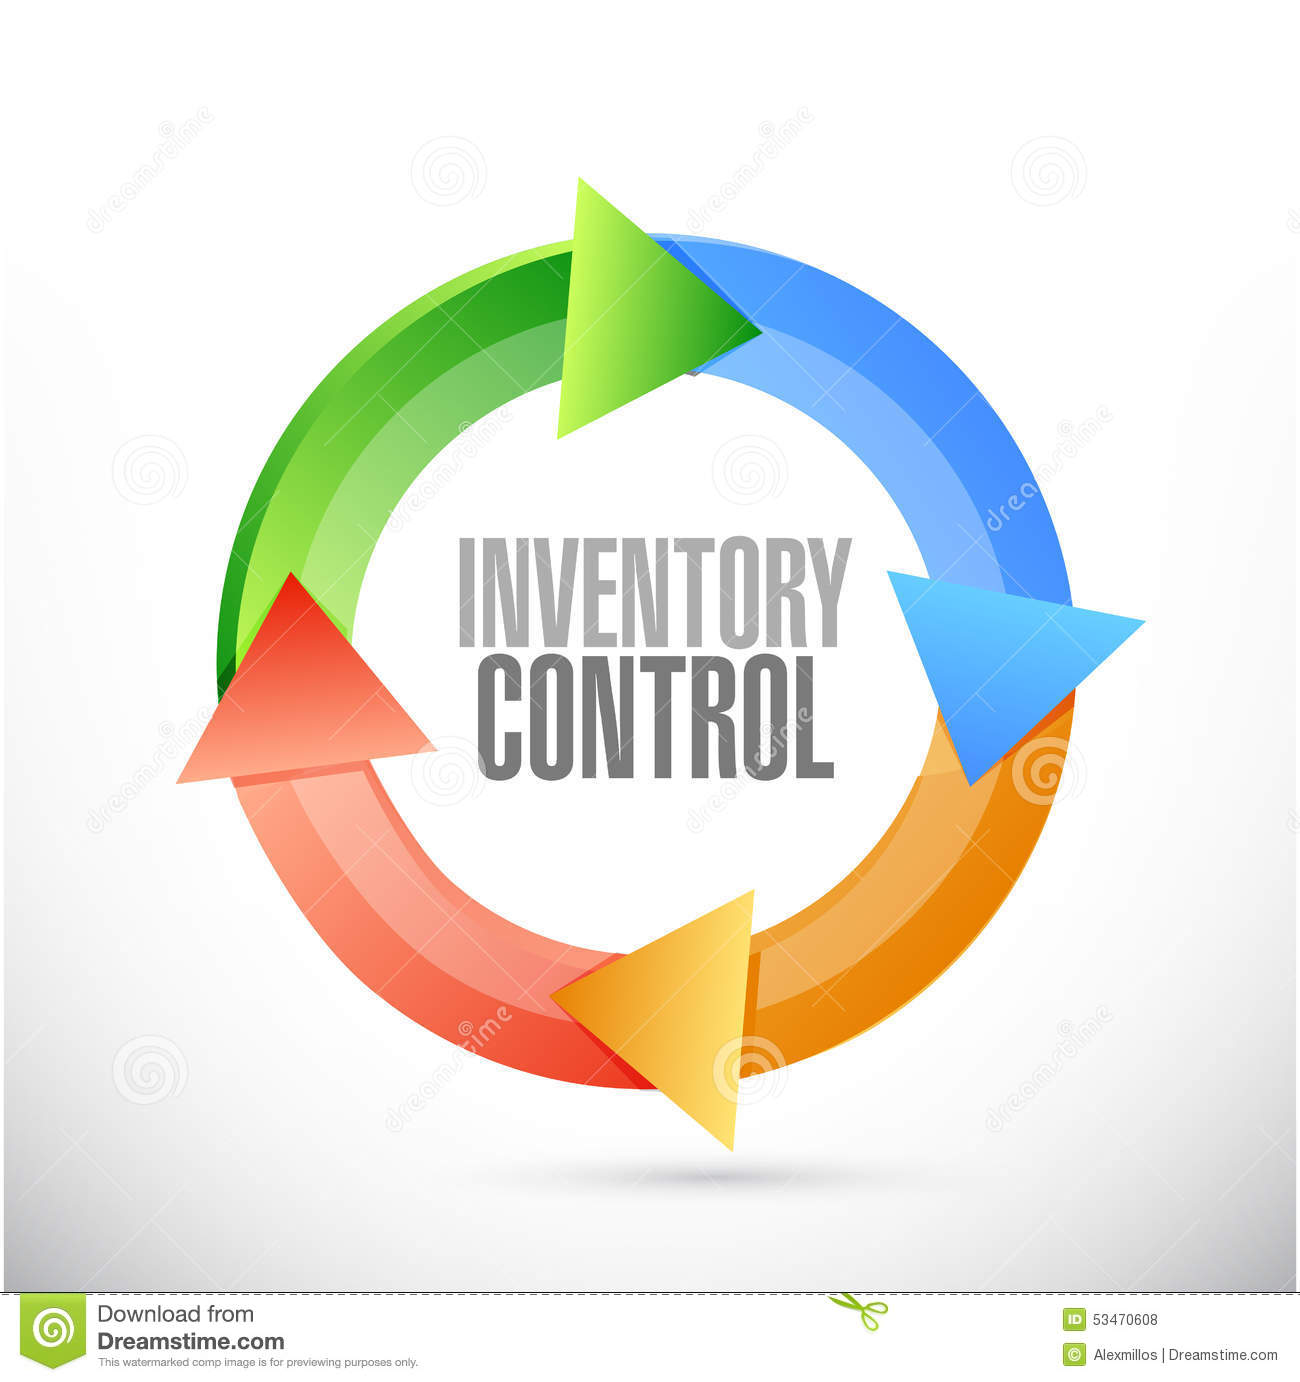 Inventory Control Cycle Sign Concept Stock Illustration